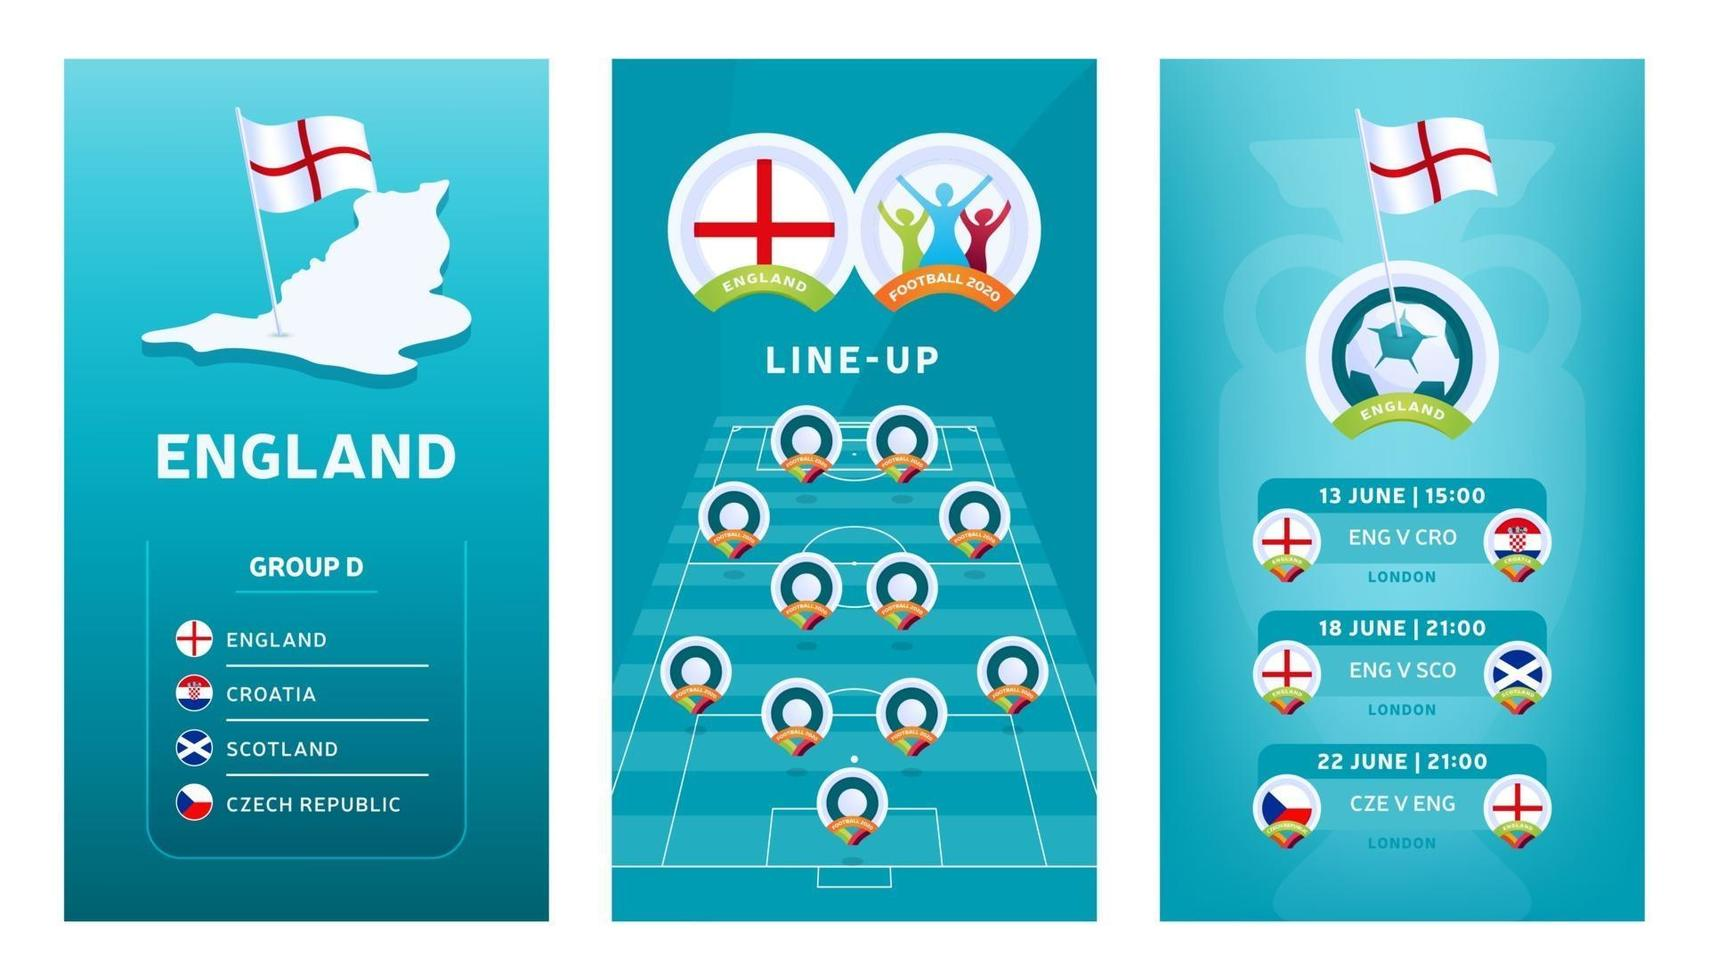 European 2020 football vertical banner set for social media. England group D banner with isometric map, pin flag, match schedule and line-up on soccer field vector